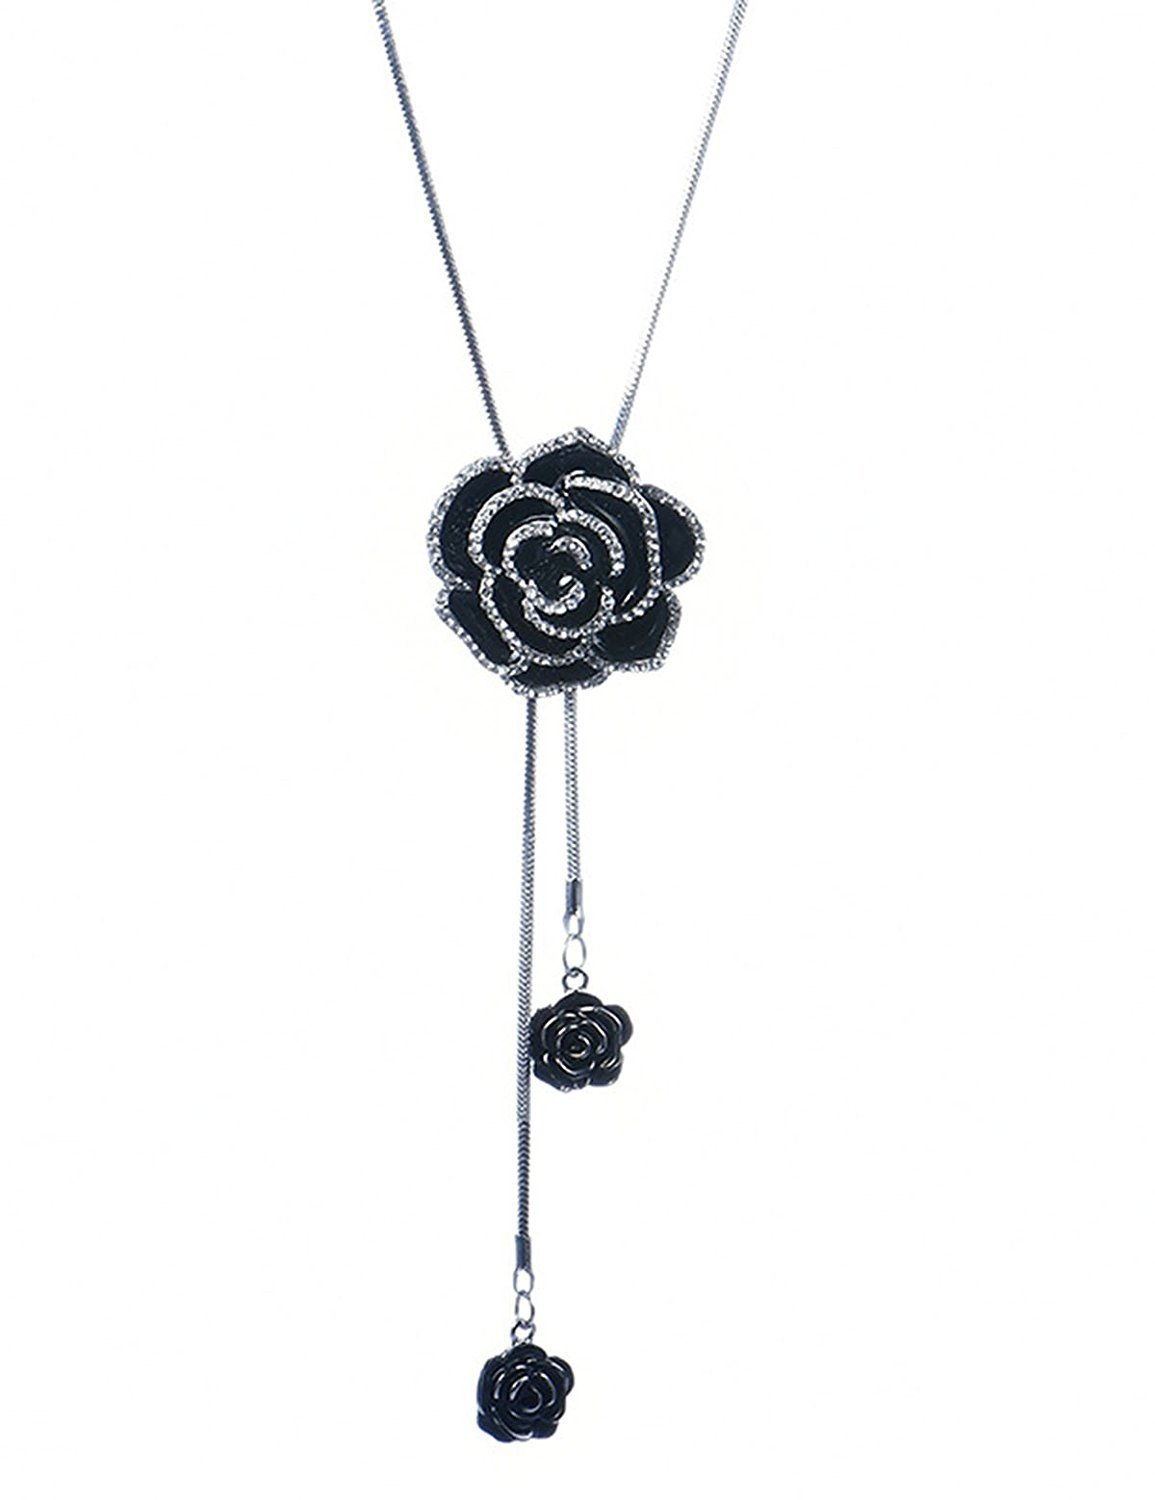 Gexo Tassel Long Chain Sweater Necklace for Women Rhinestone Rose Shape Pendant Necklace Fashion Jewelry Tassel Necklace